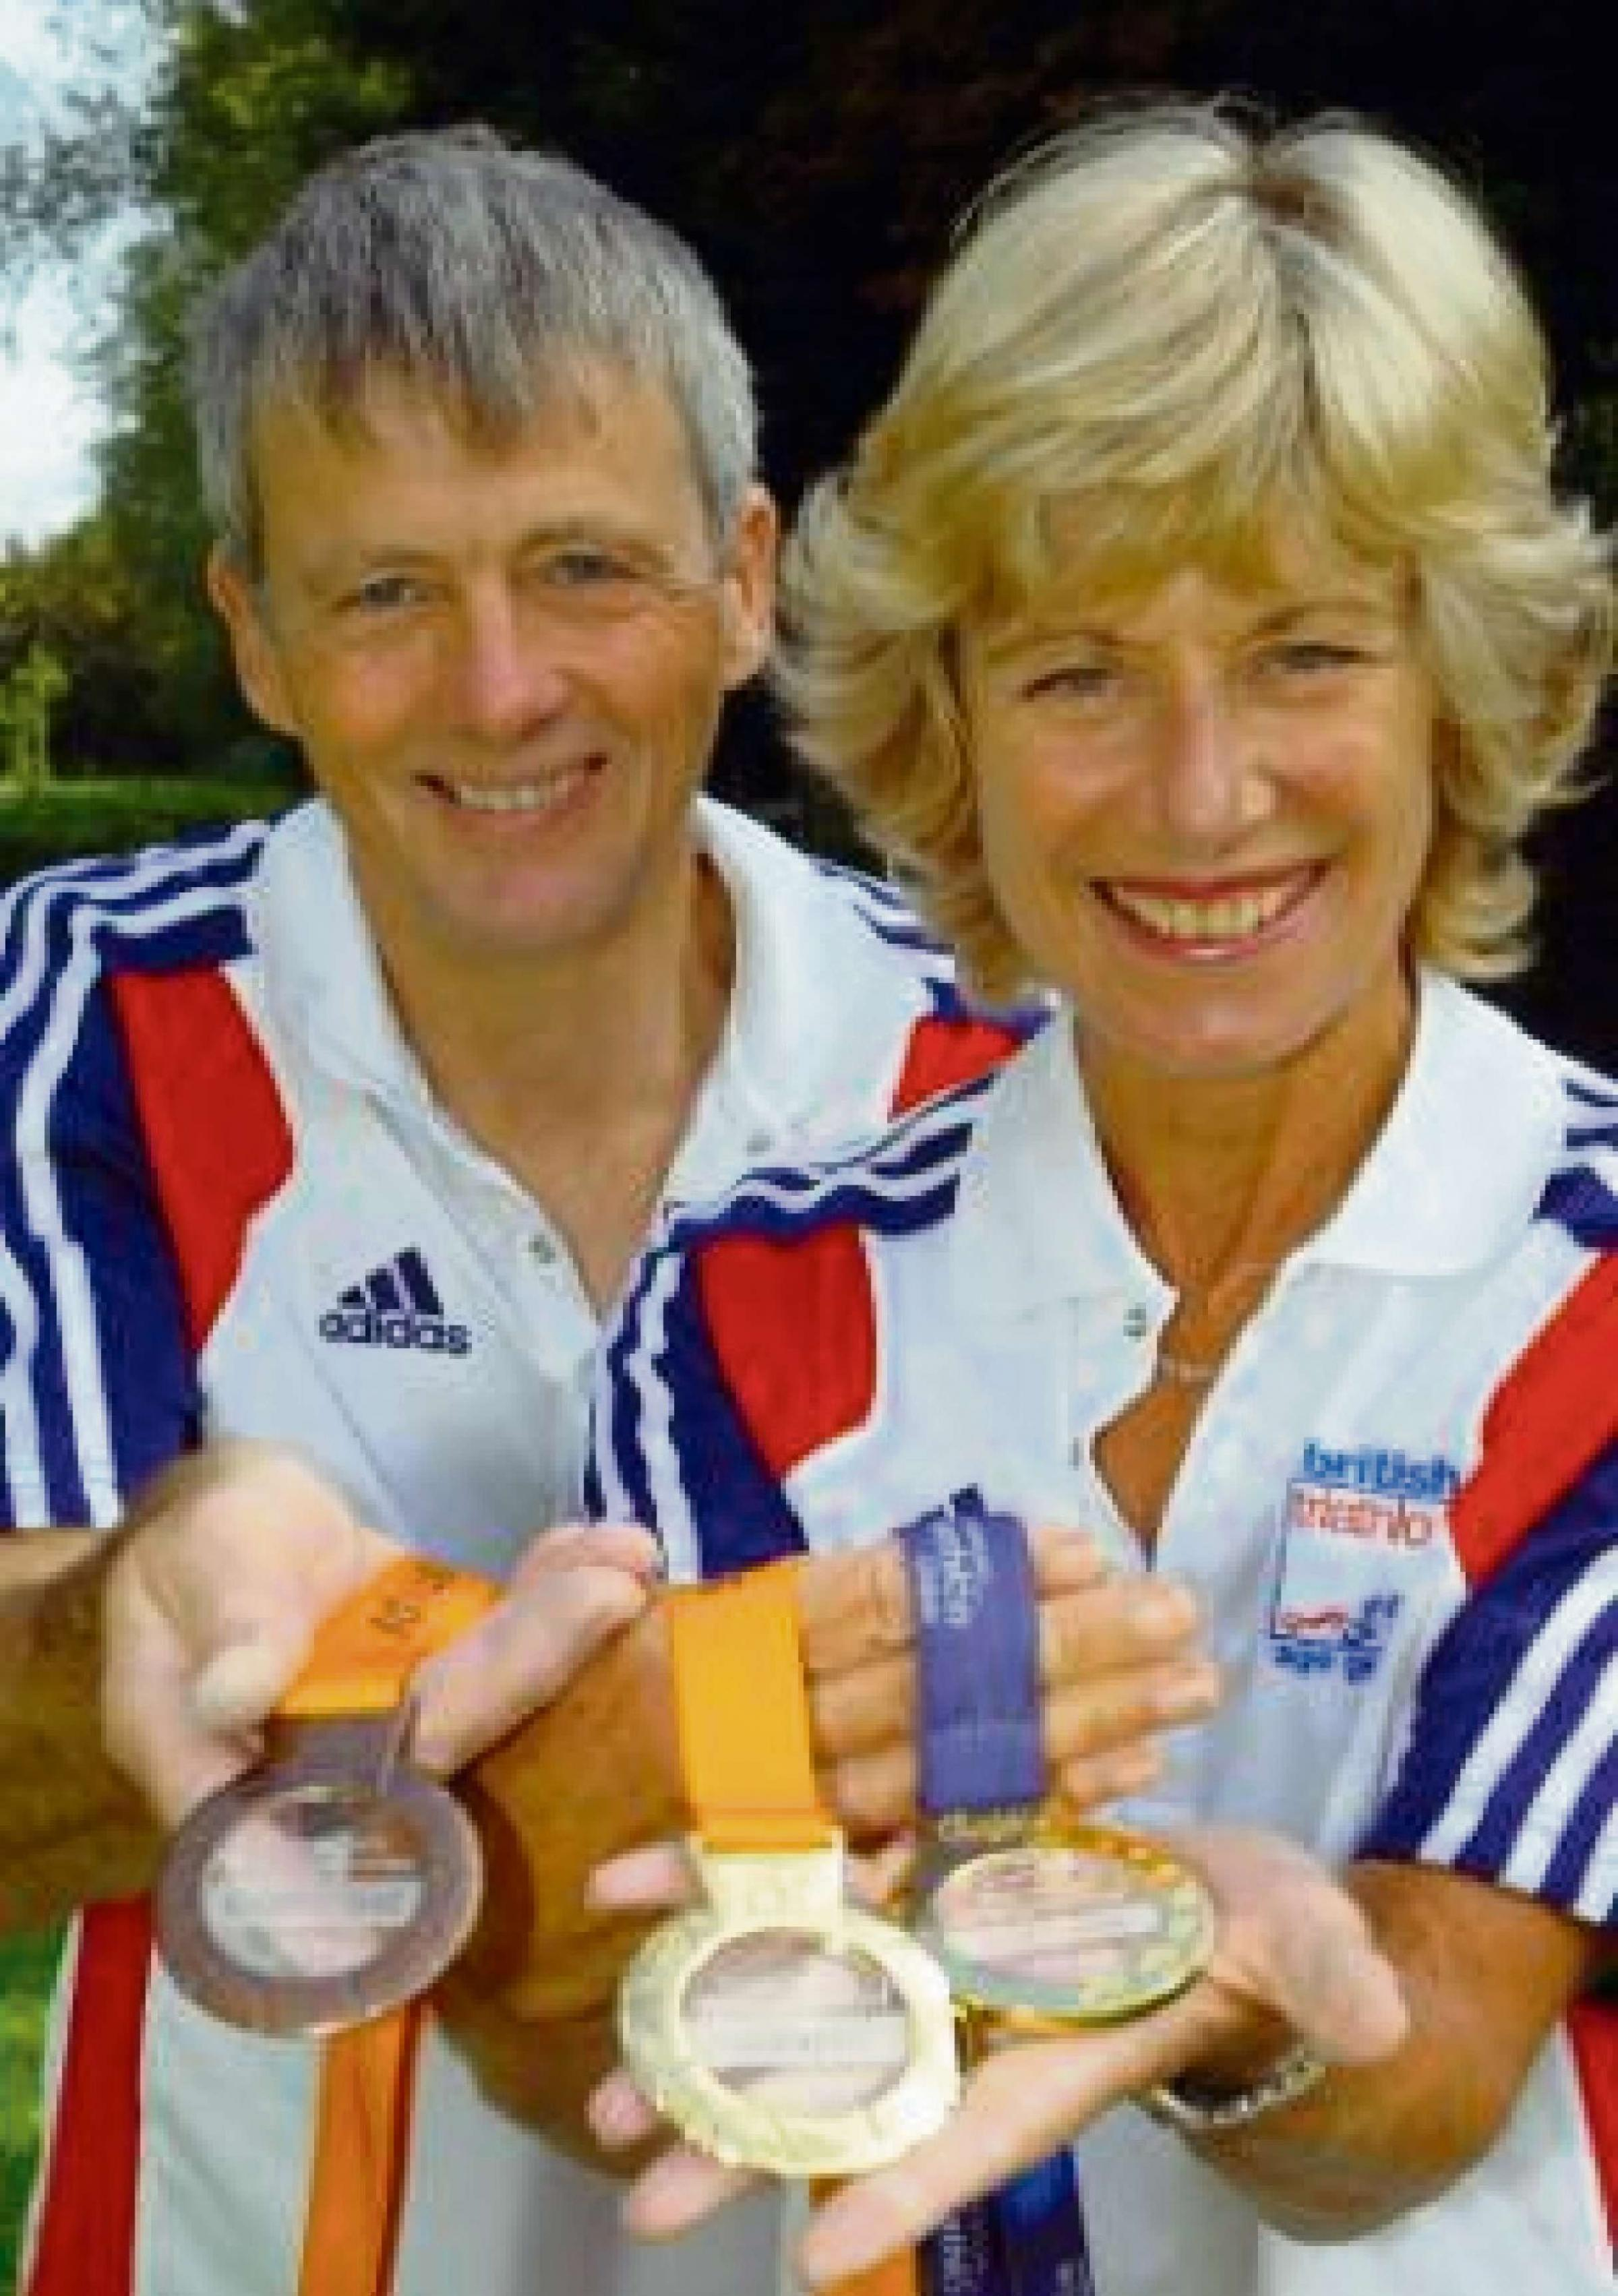 Thornbury runners Jon Greenwood and Jane Leslie